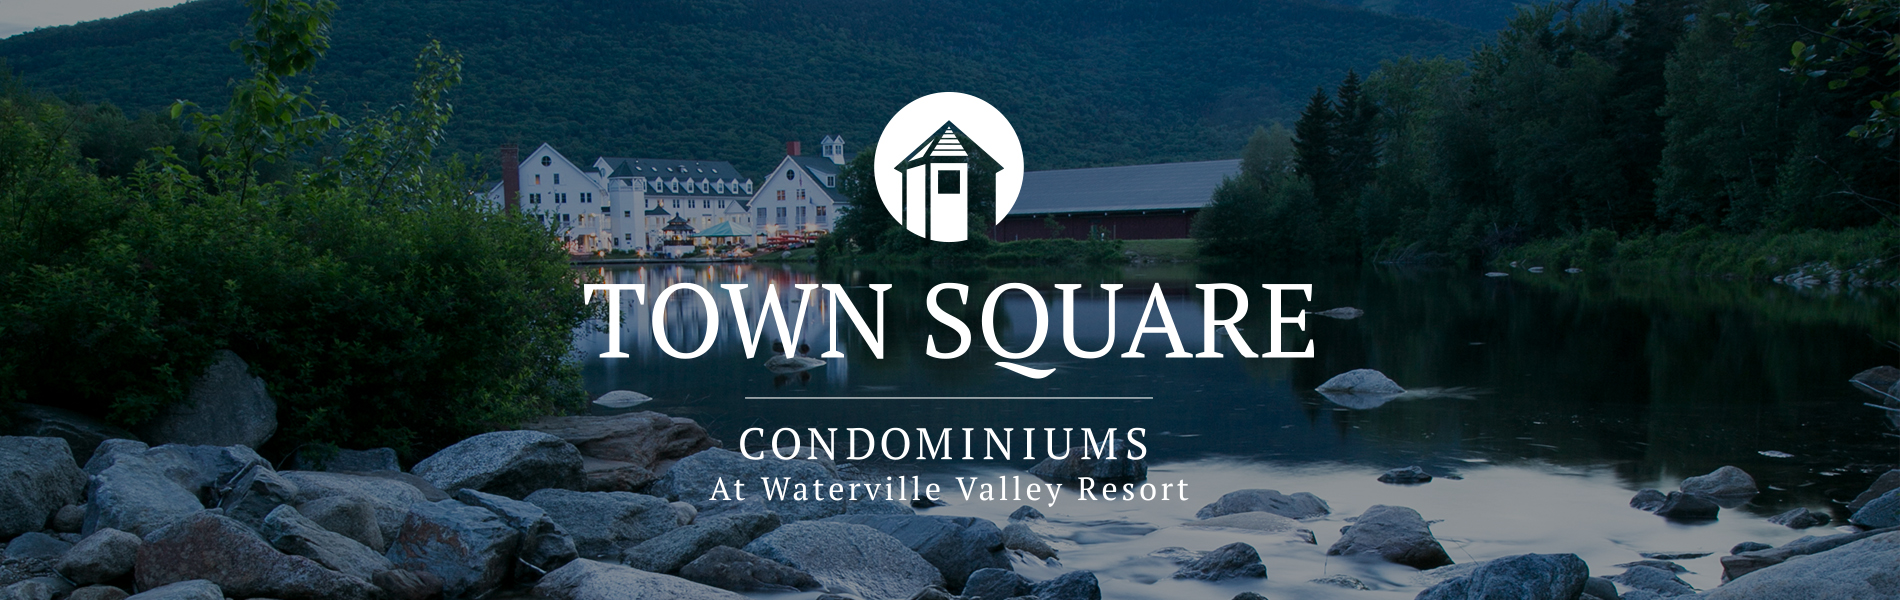 Town Square Condominiums sits on the shores of Corcoran Pond with Mt. Tecumseh serving as the backdrop.